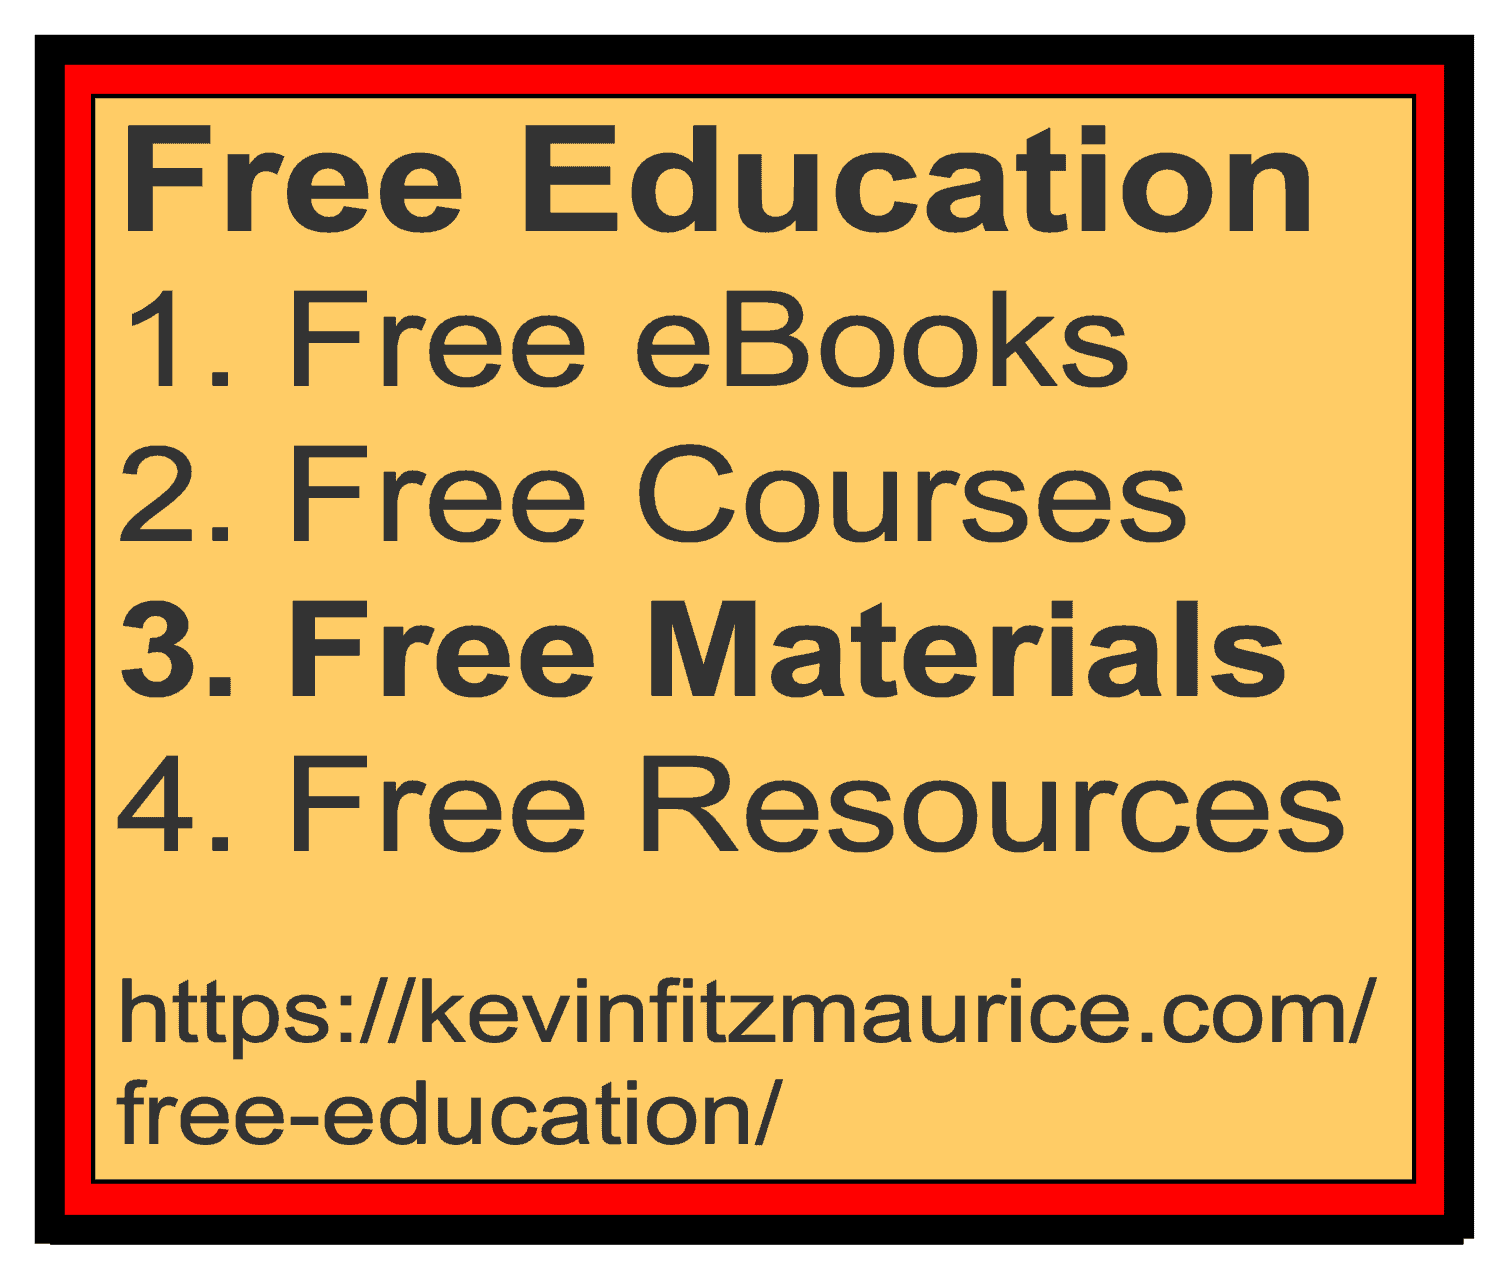 Free Education Lists for Materials